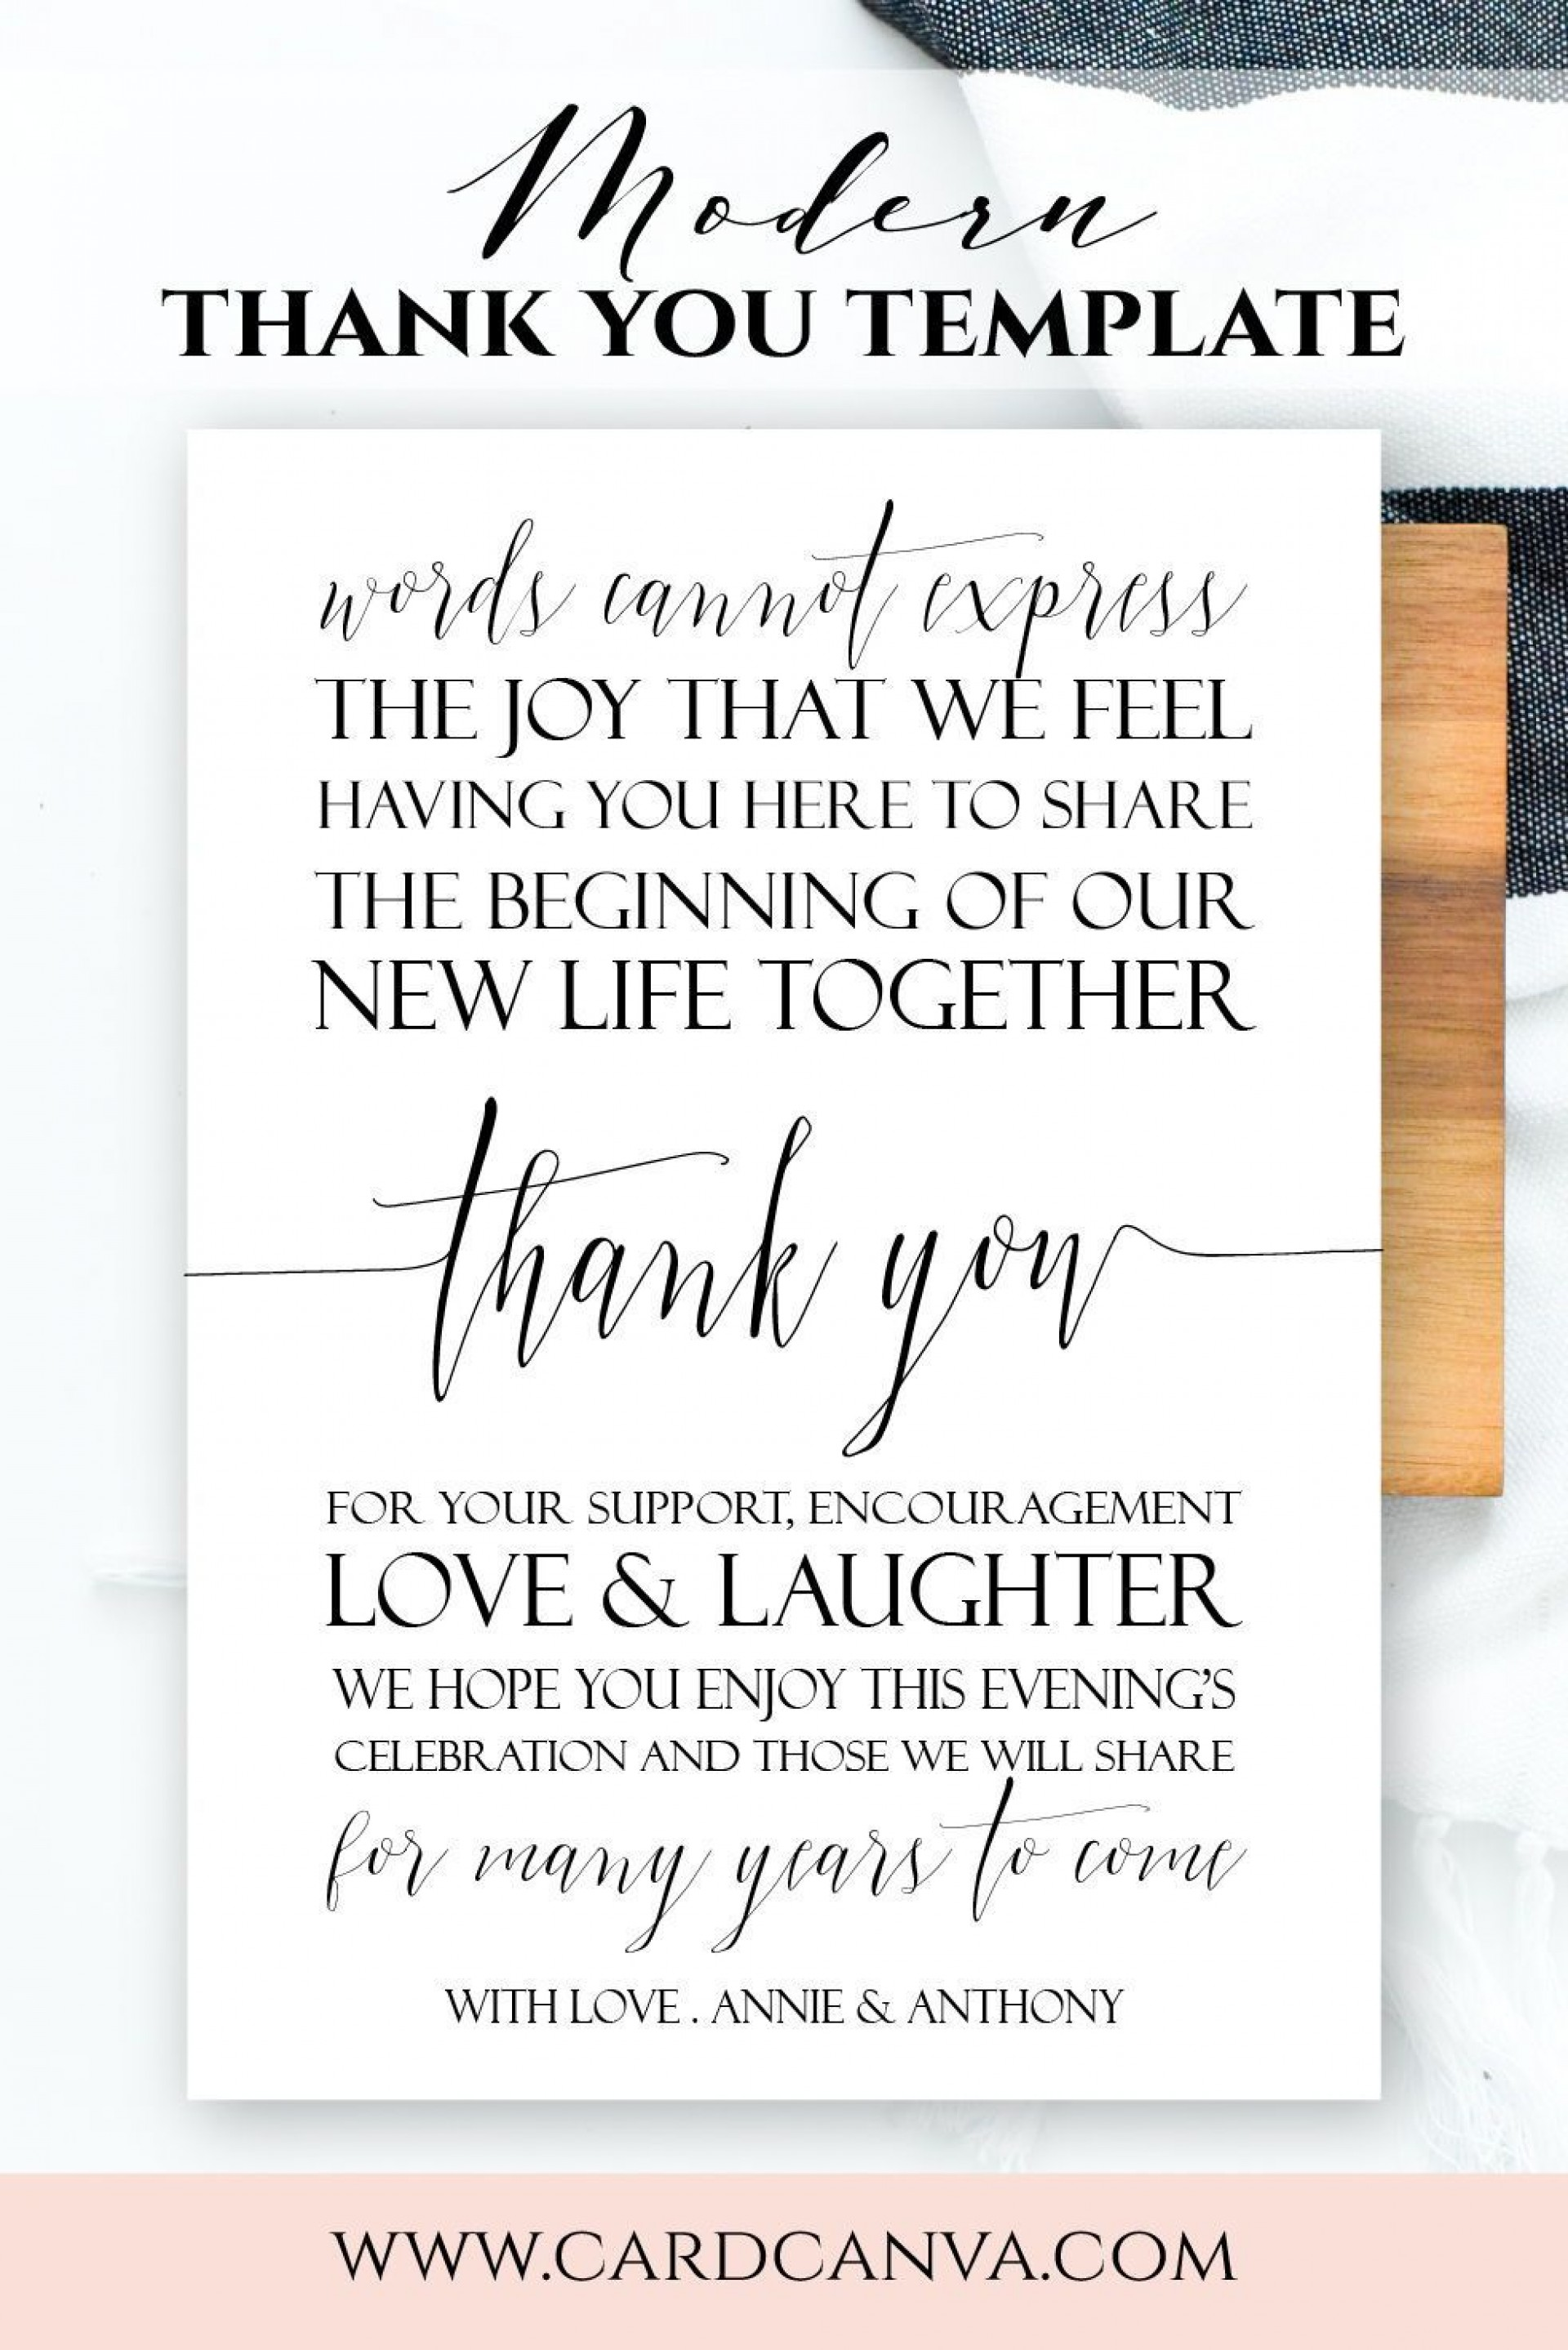 000 Staggering Wedding Welcome Letter Template Word Highest Clarity 1920